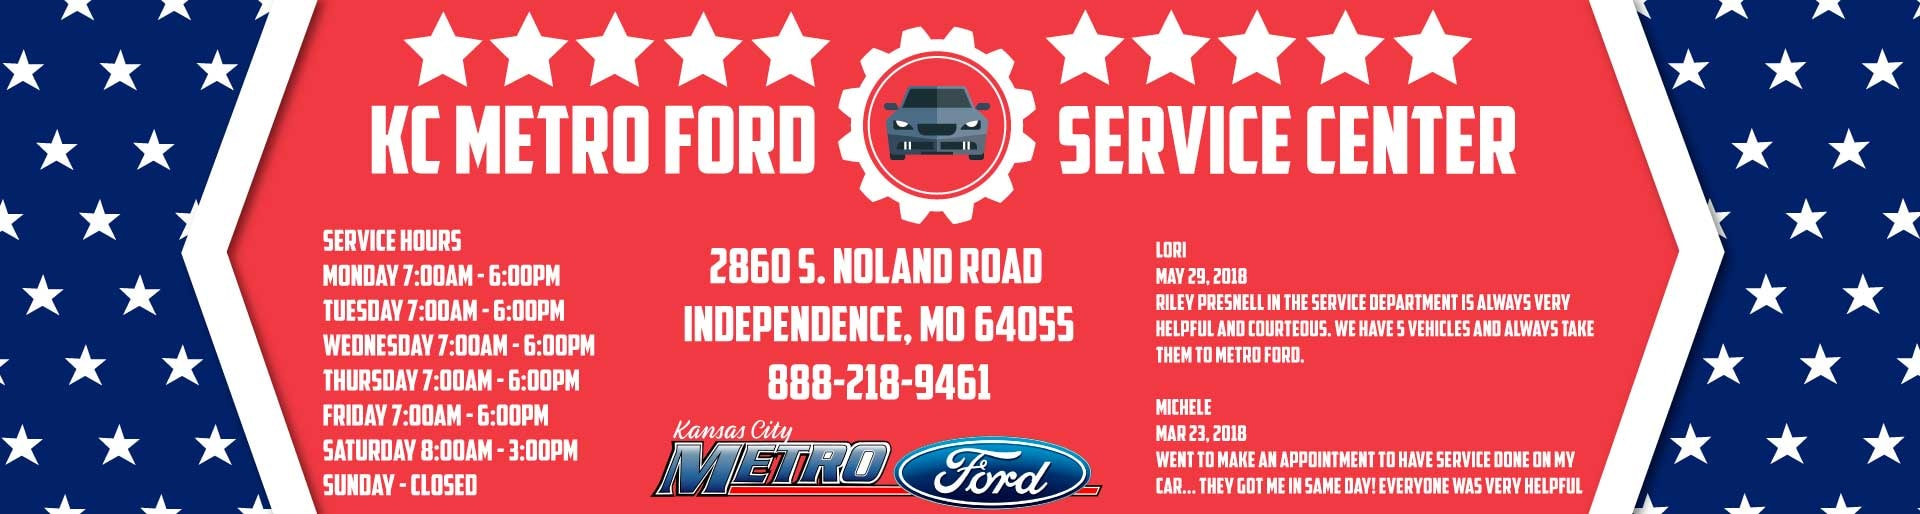 Metro Ford Inc New Car Dealership Independence Mo Near 2006 F250 Tow Haul Fuse Diagram Previous Next